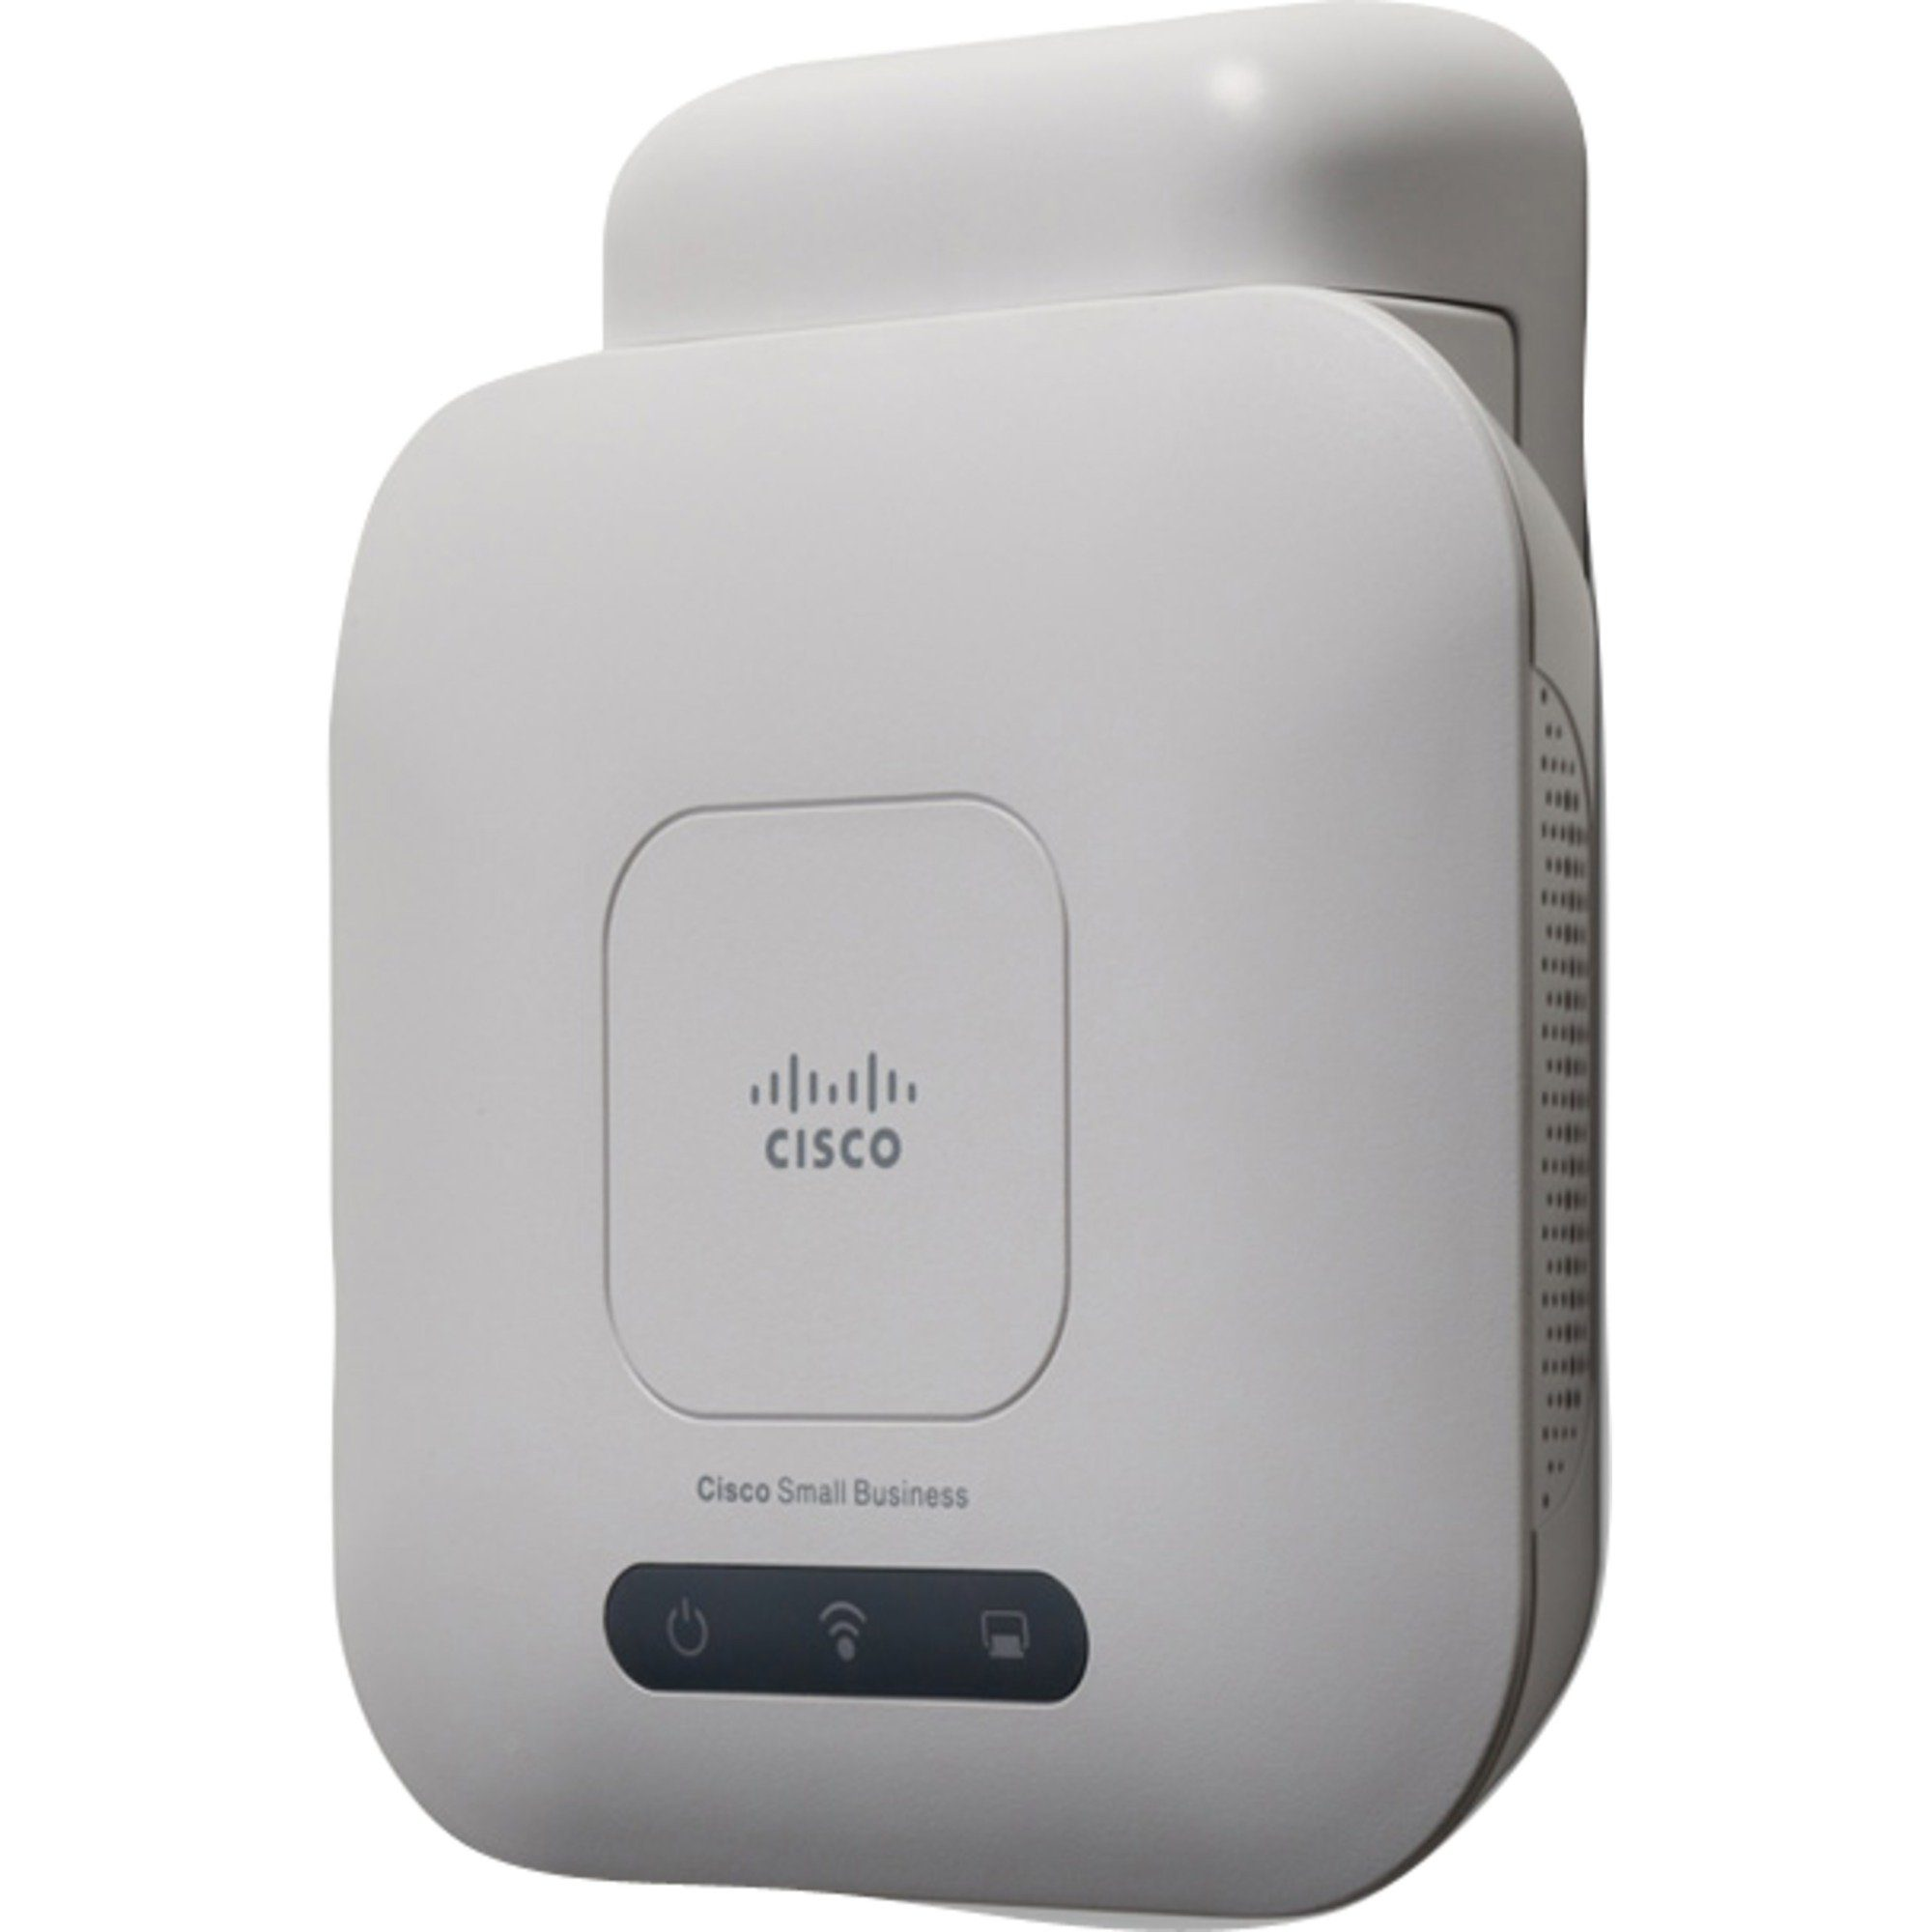 Cisco Access Point »WAP121«